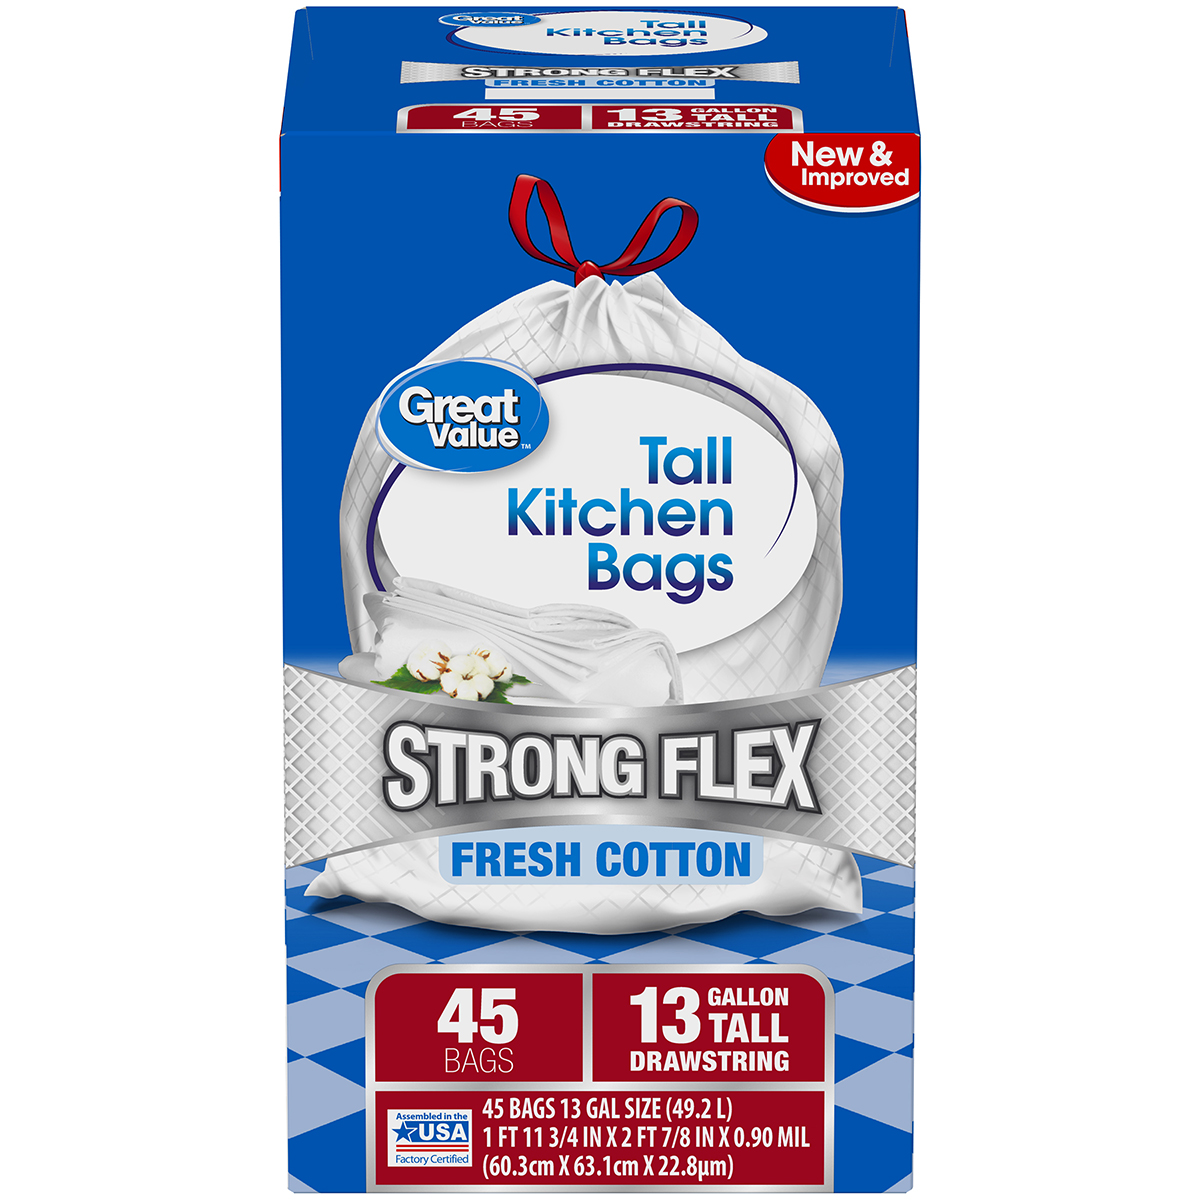 Great Value Strong Flex Tall Kitchen Drawstring Trash Bags, Fresh Cotton, 13 Gallon, 45 Count